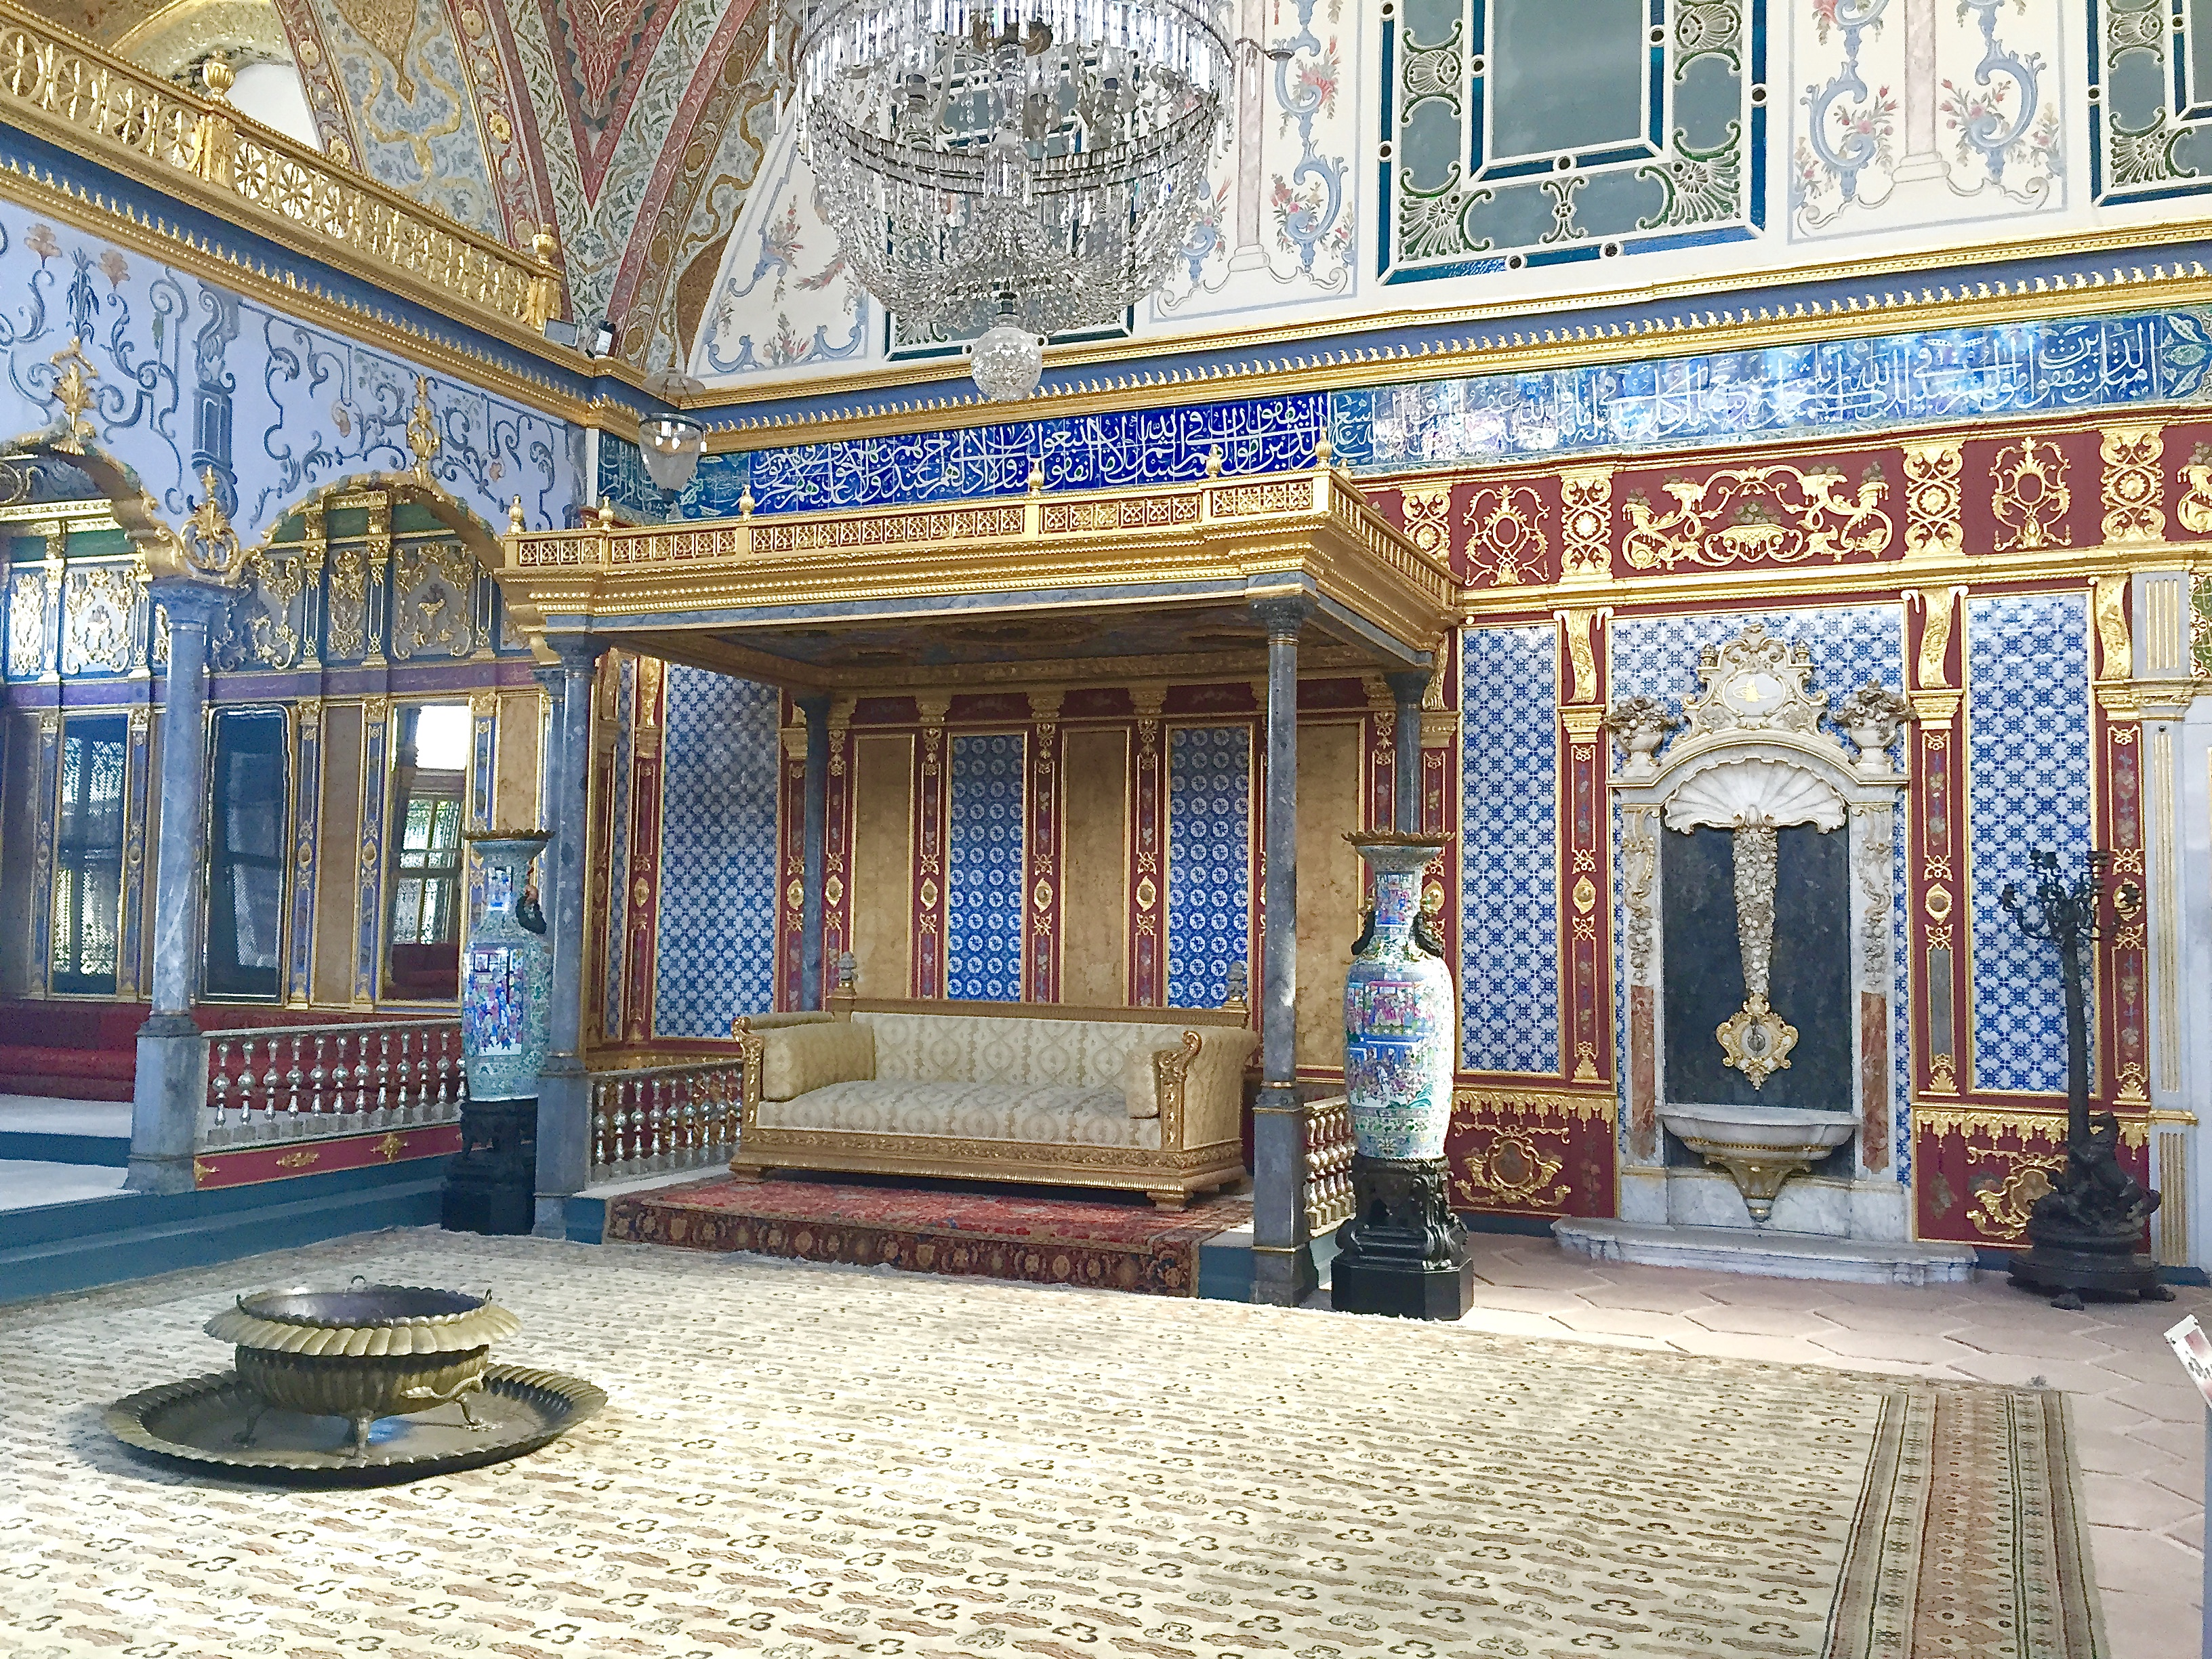 Image of Topkapi Palace, Stop 1 on our Istanbul itinerary